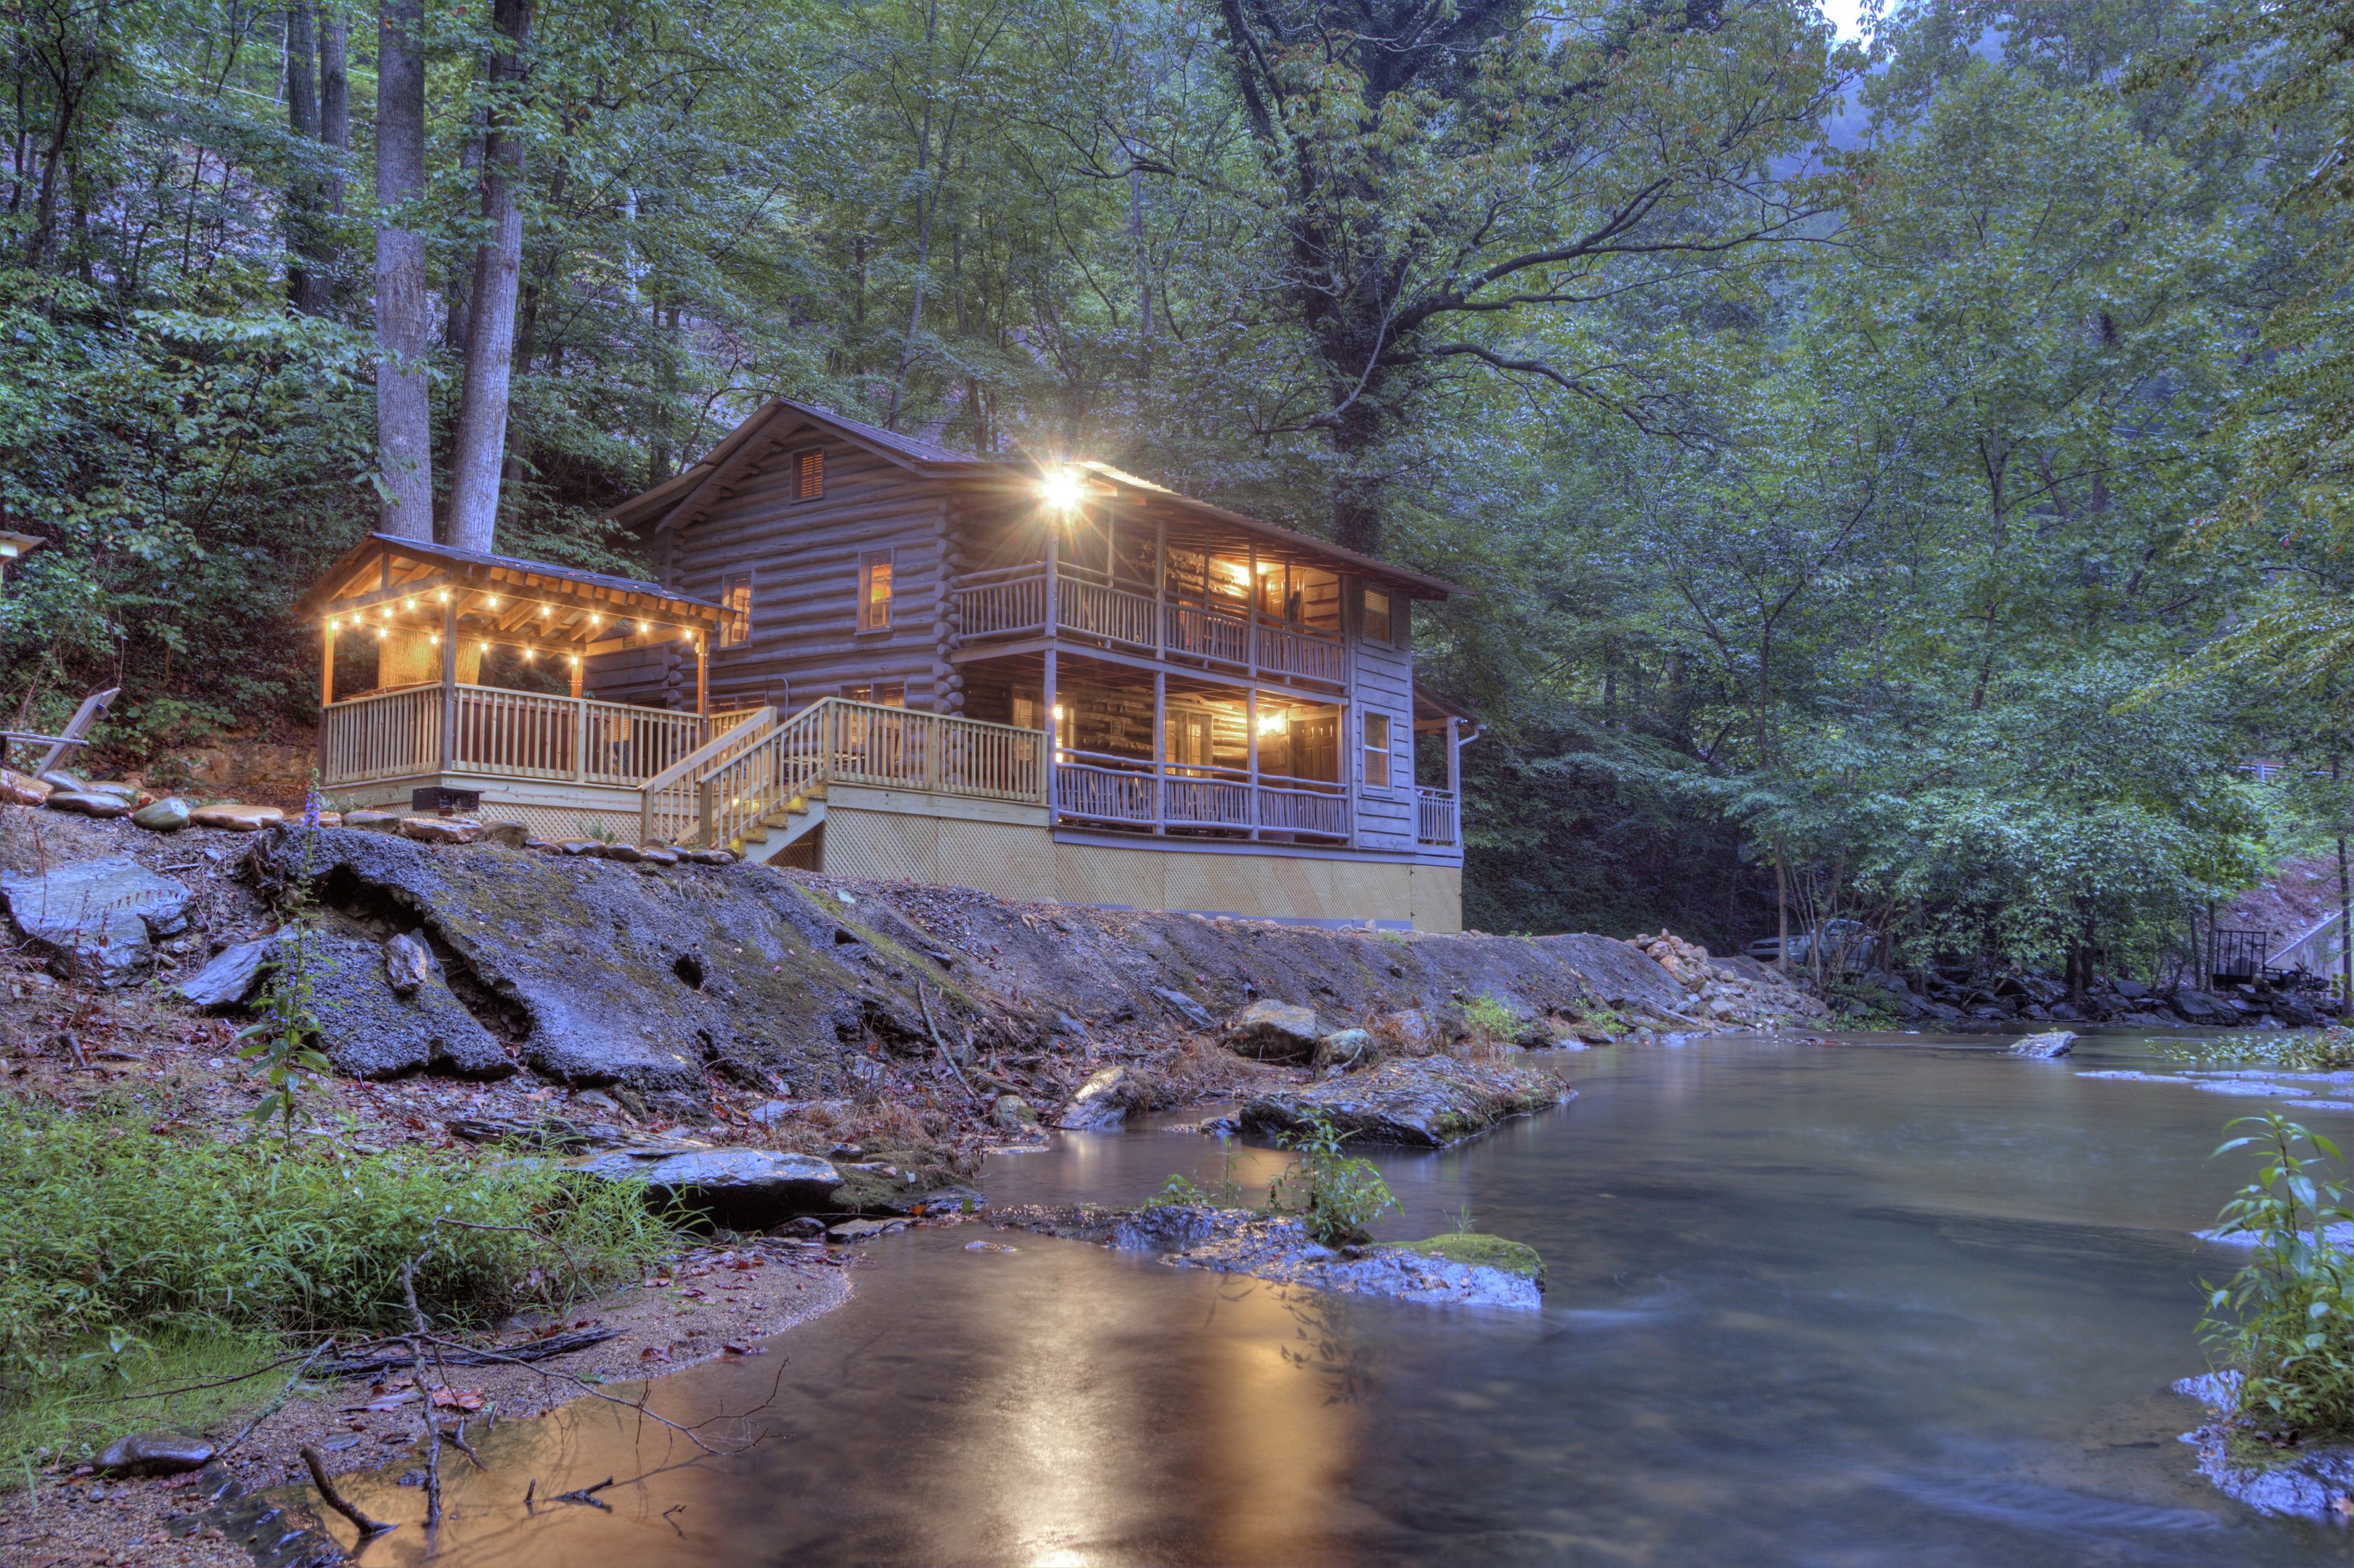 cabin smoky mountains tennessee by owner interior rentals cabins mountain rental secluded in